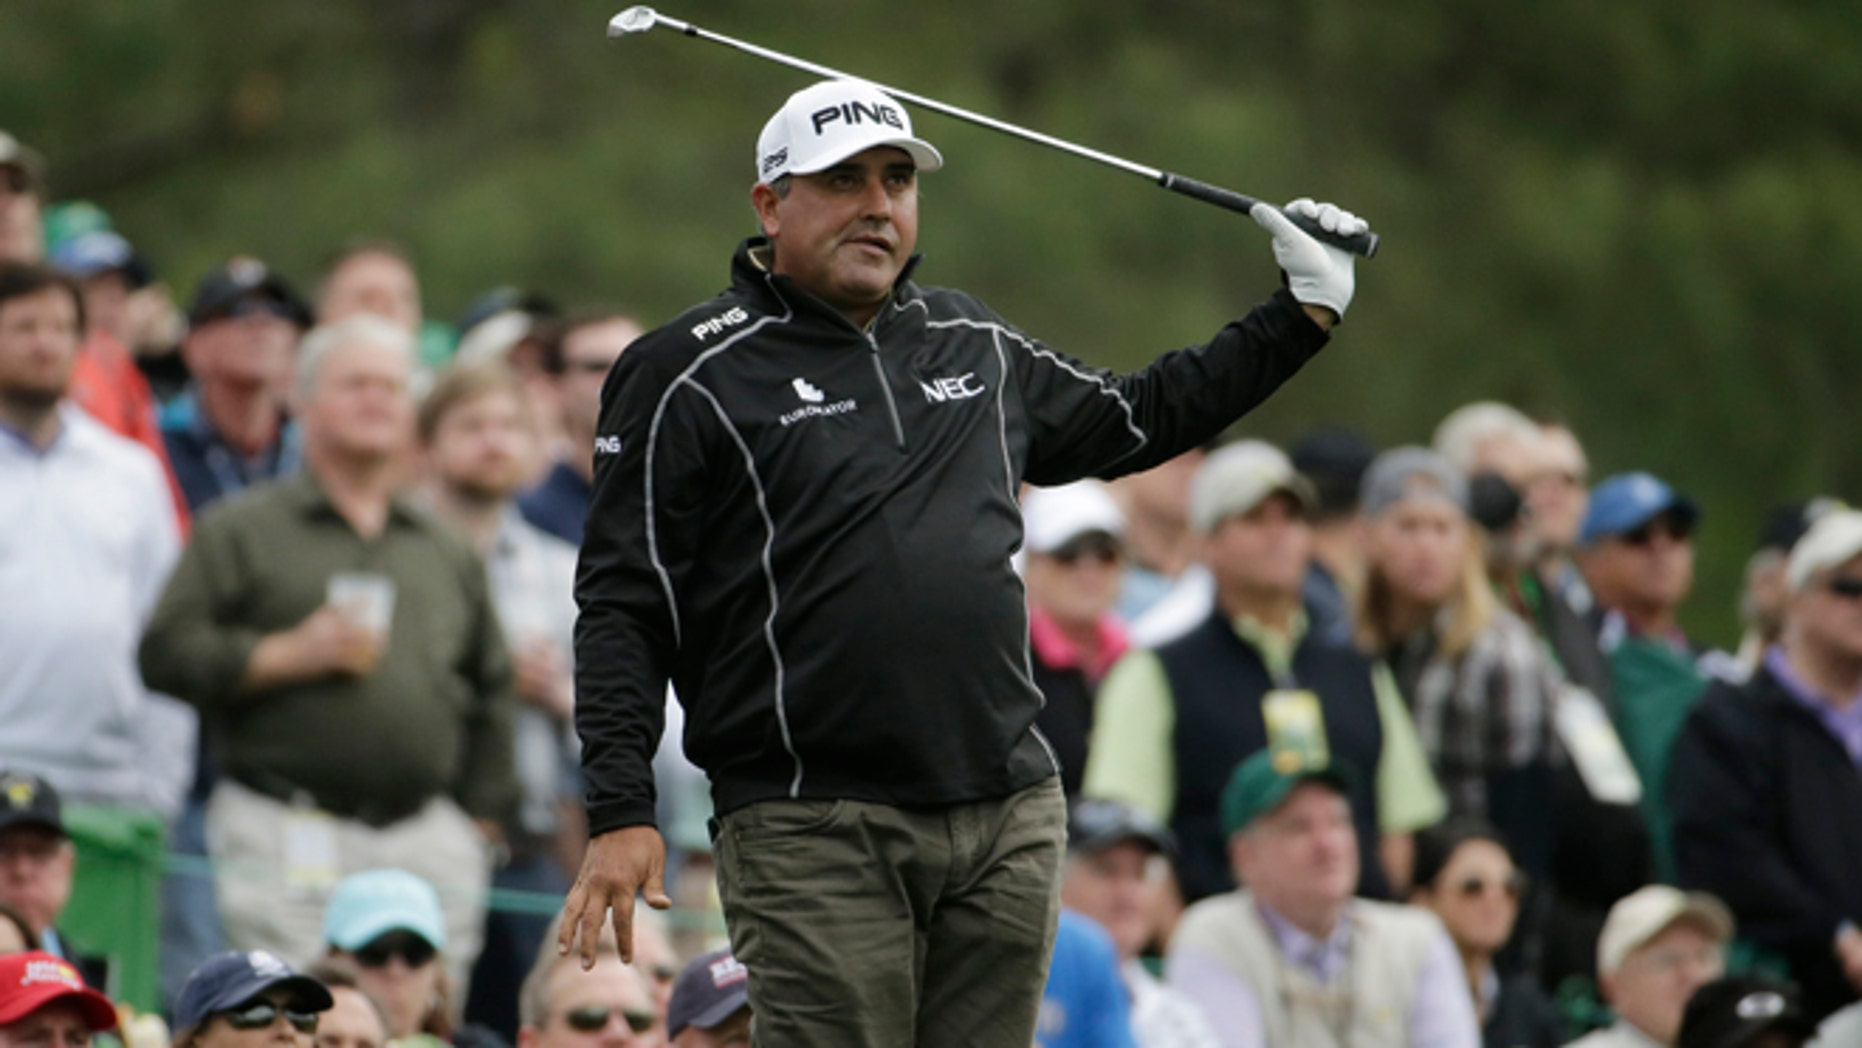 Angel Cabrera during a practice round for the Masters golf tournament, on April 8, 2014, in Augusta, Ga.